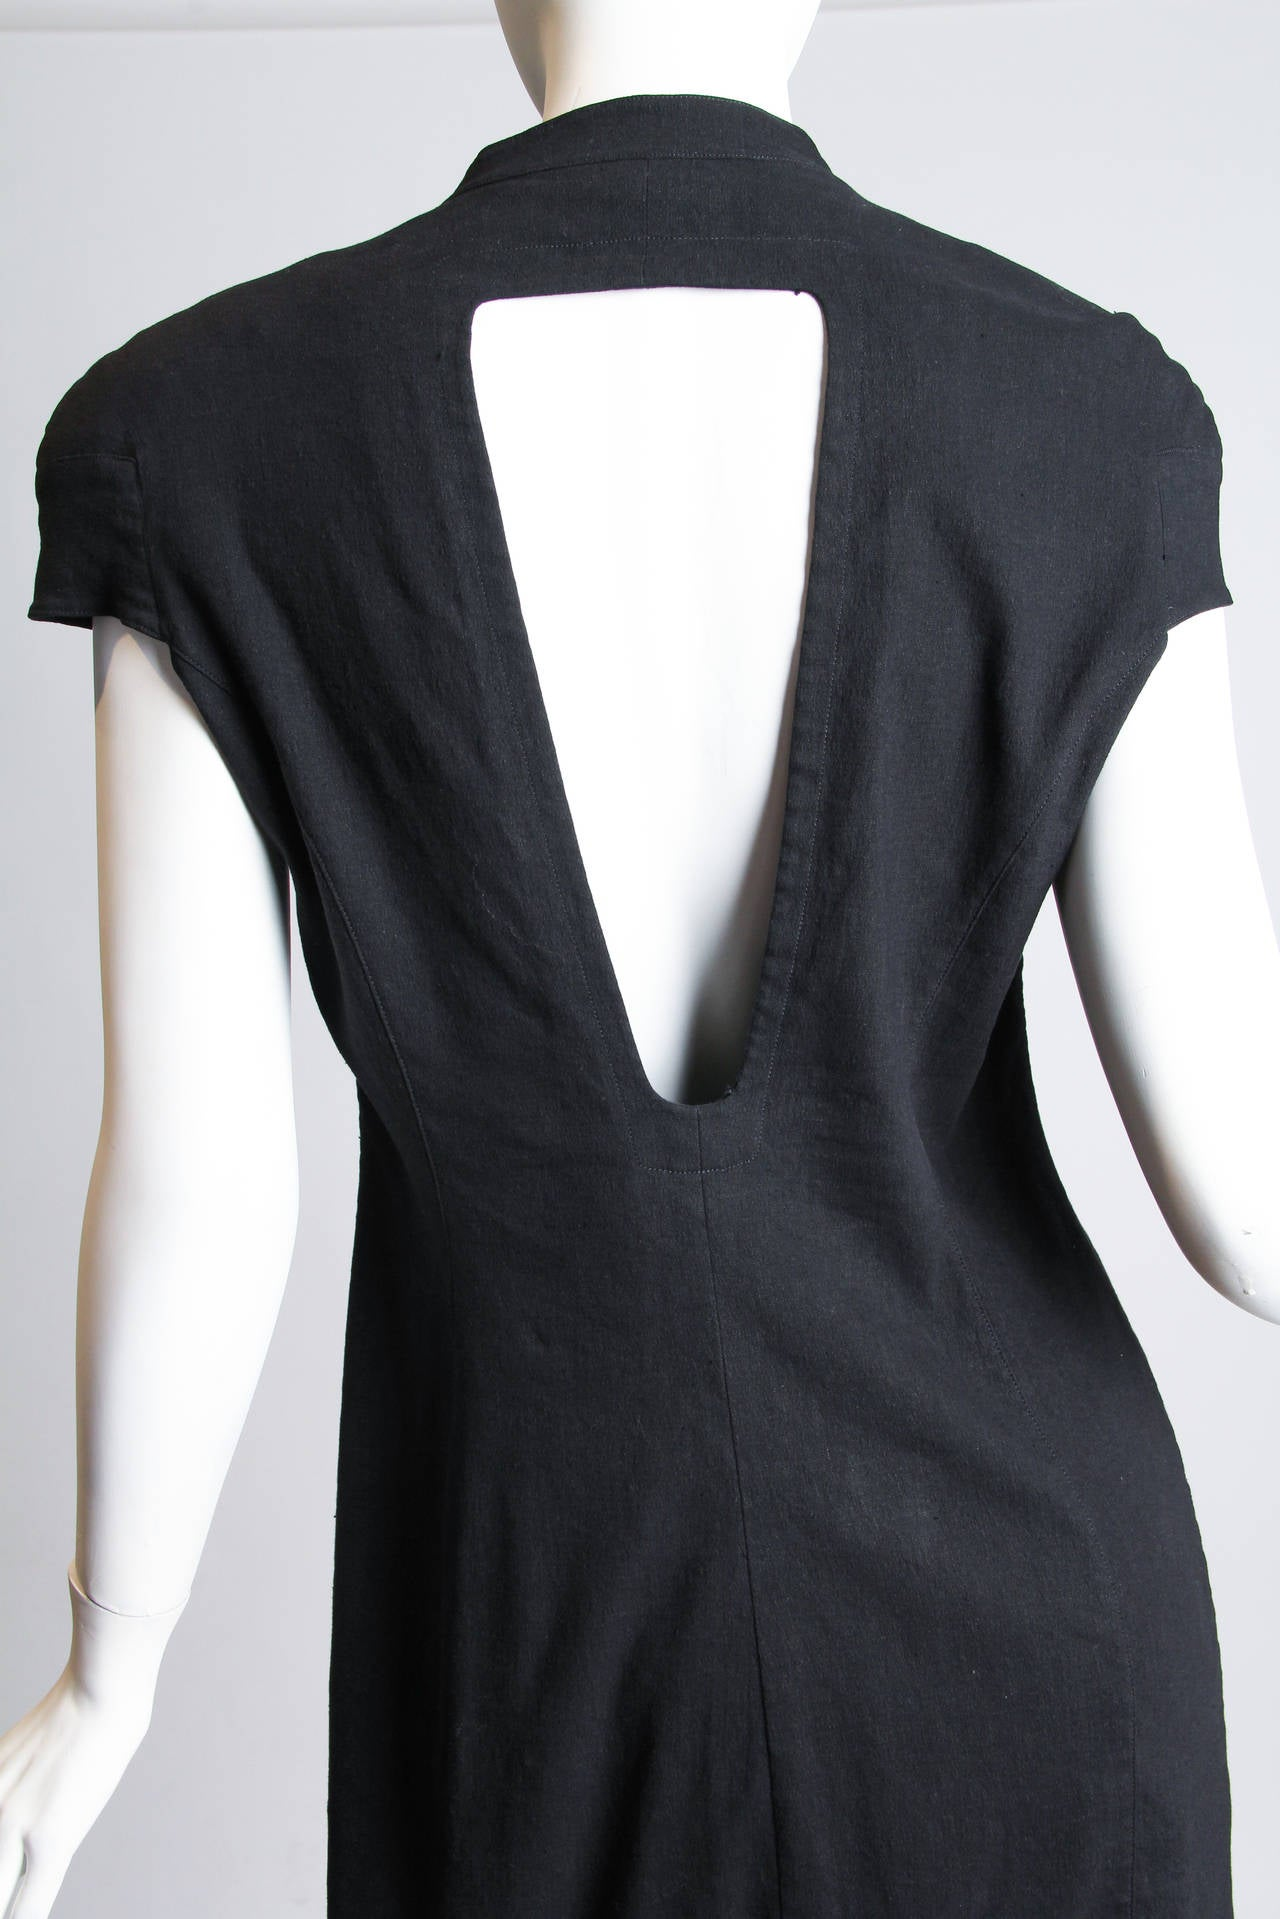 Mugler by Thierry Mugler Cotton LBD For Sale 3